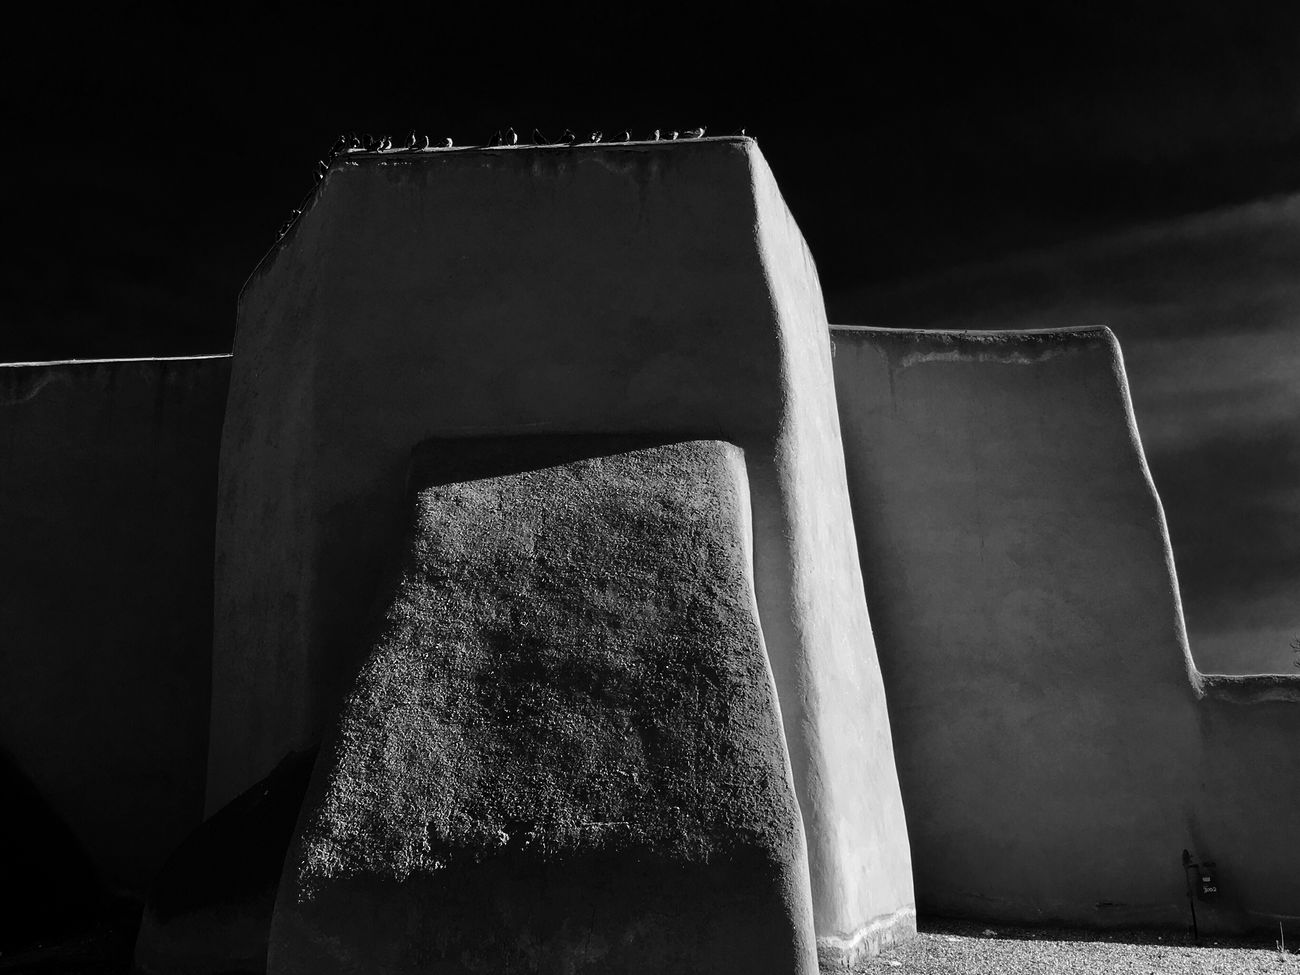 Rancho de Taos Church Built Structure No People Architecture Low Angle View Outdoors Blackandwhitephotography Black And White Photography Black And White Blackandwhite Tranquil Scene Historic Building Historical Building Historical Architecture Adobe Building Adobe